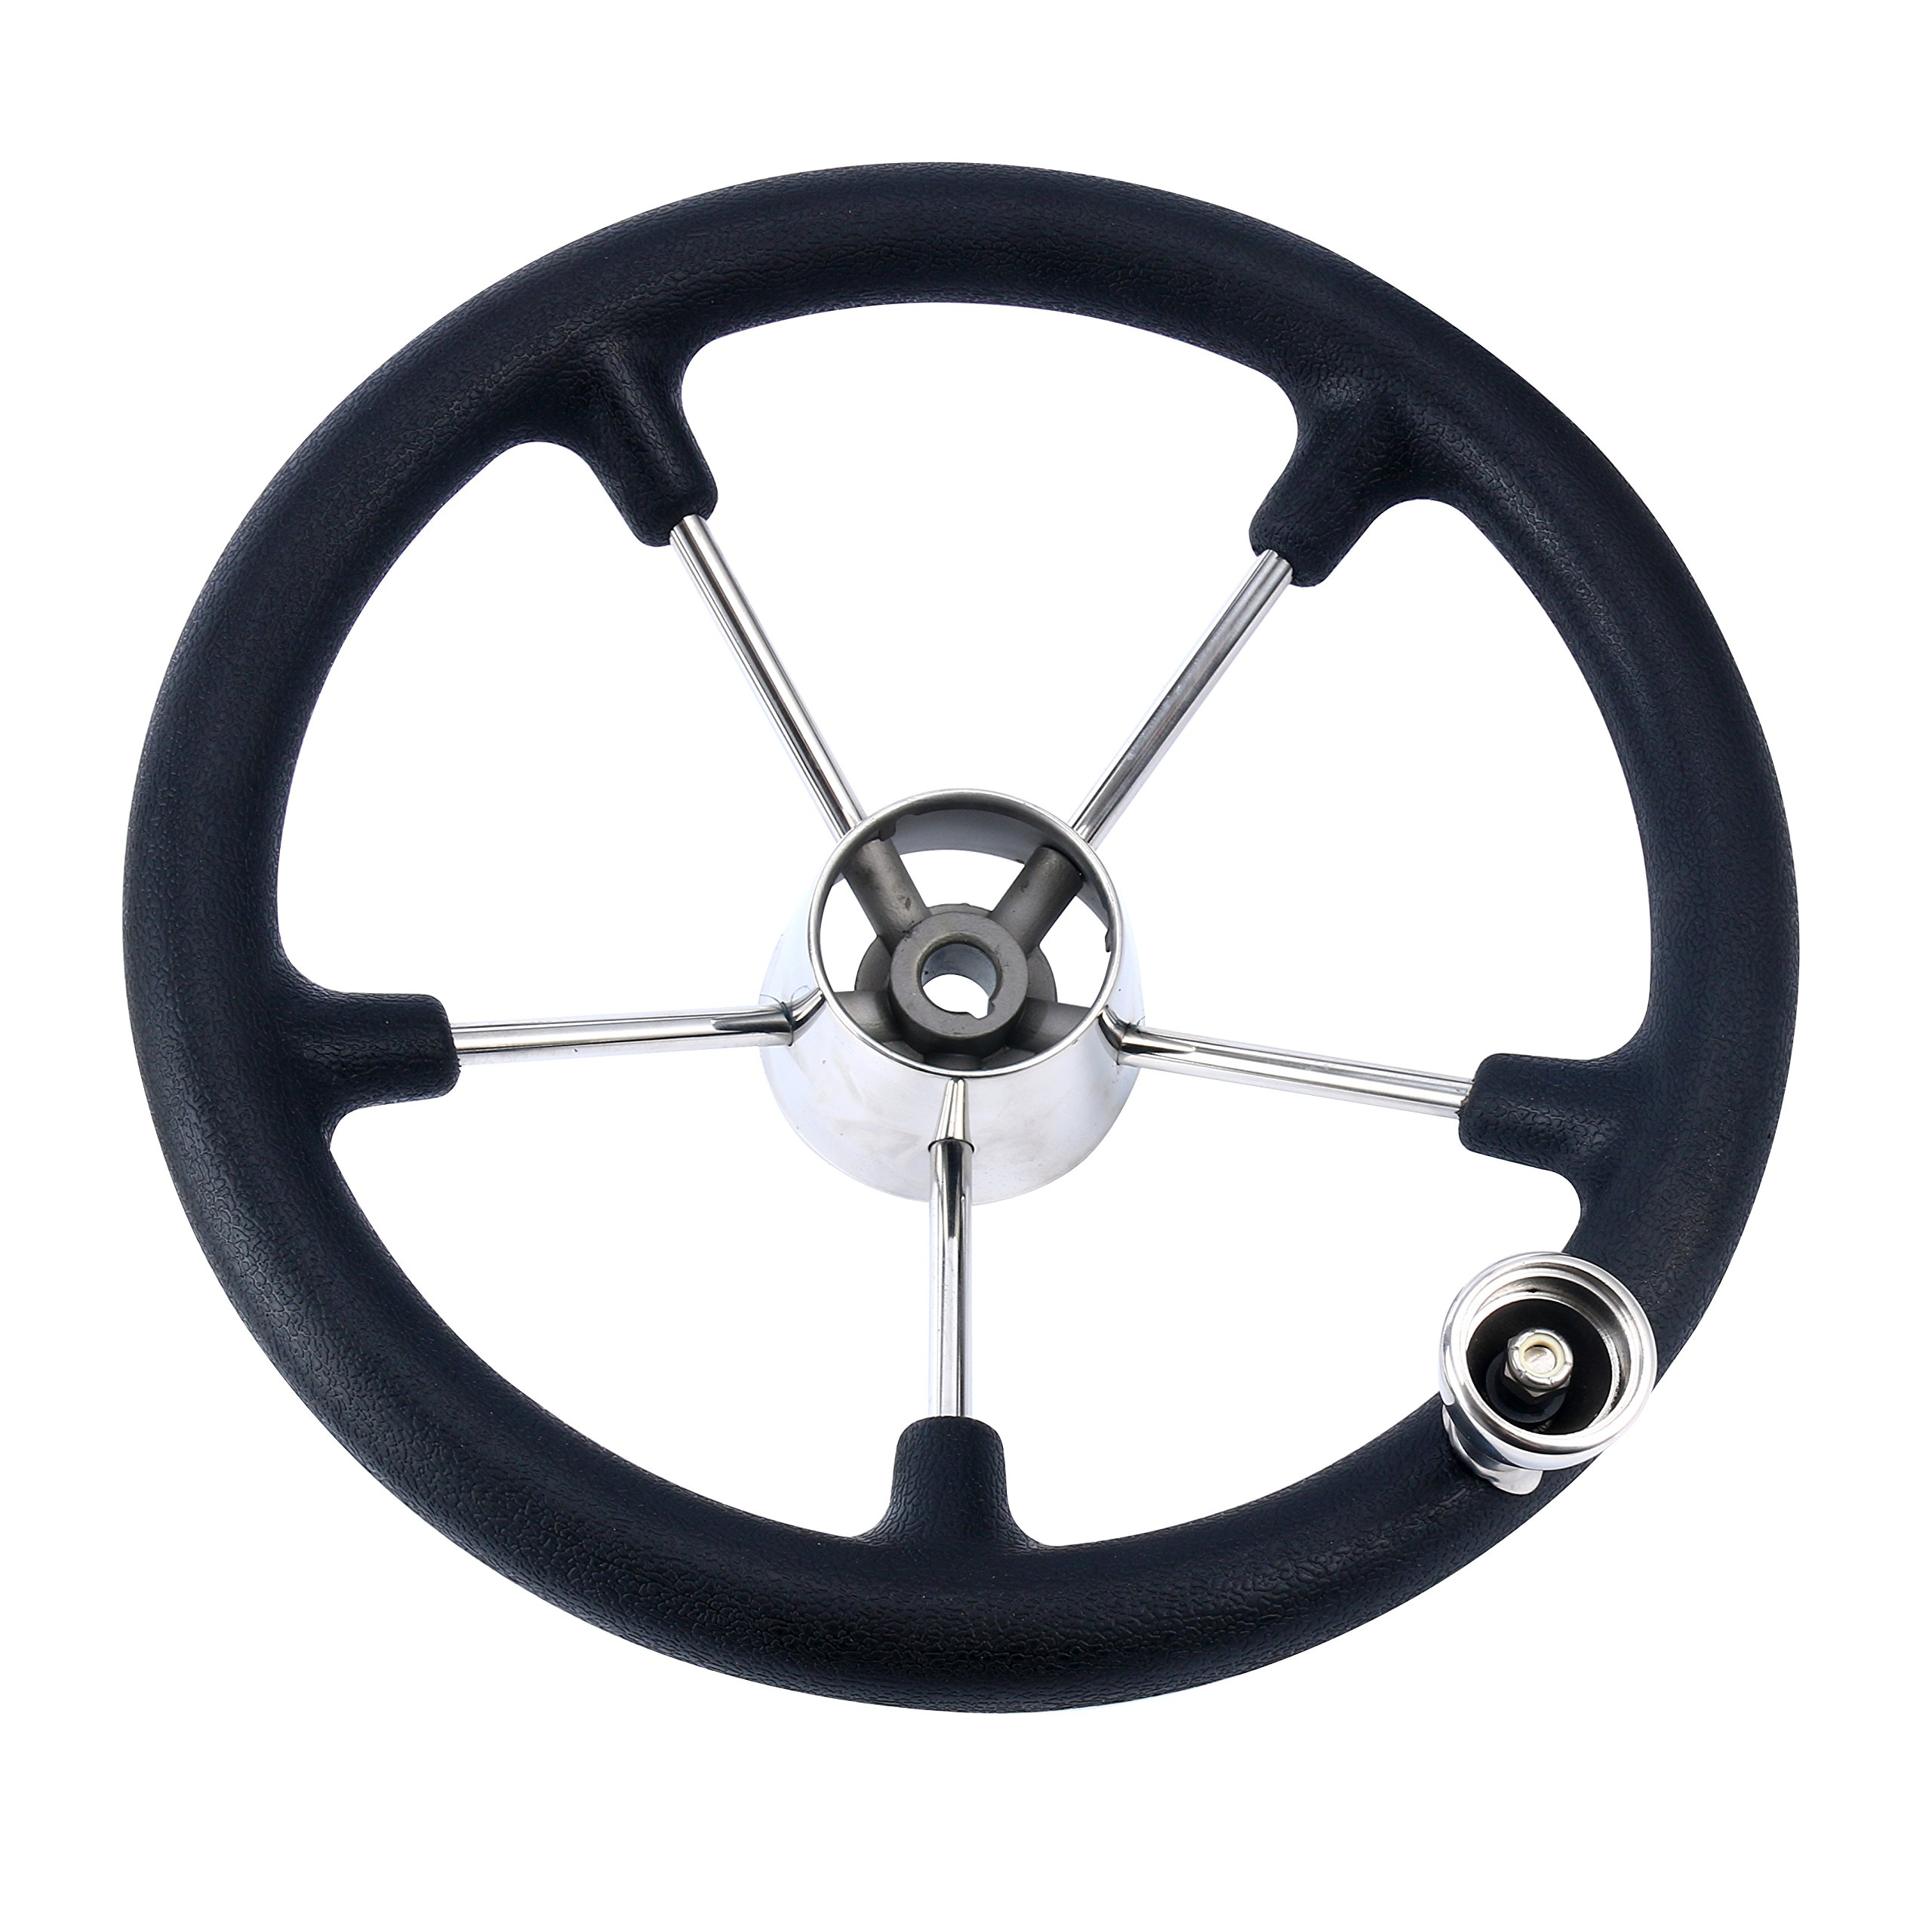 Amarine-made 13-1/2 Inch Boat Marine 5 Spoke Destroyer Steering Wheel with Black Foam Grip and Knob by Amarine-made (Image #2)